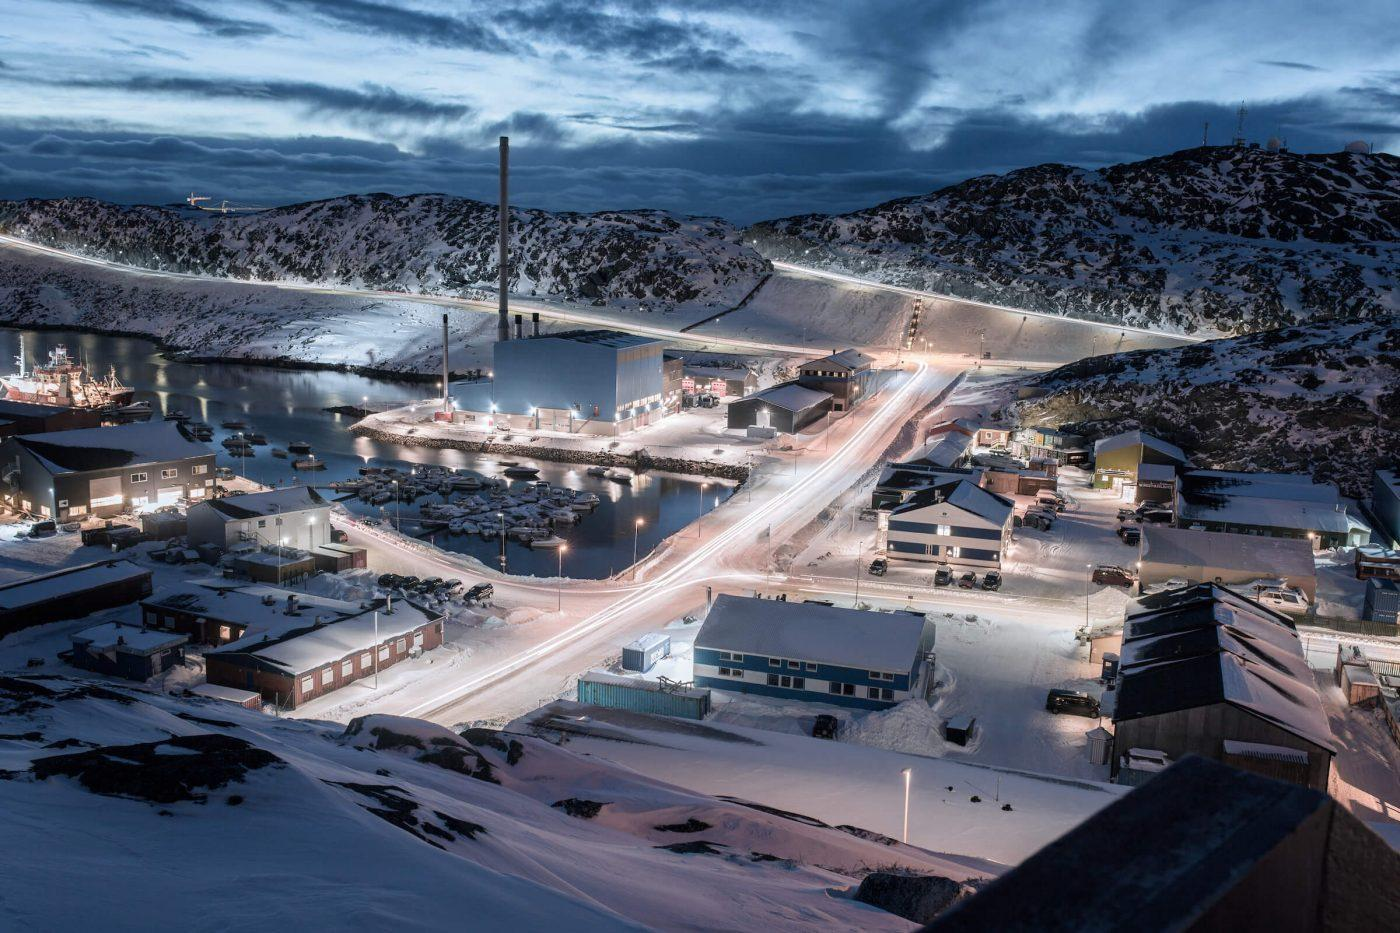 Long exposure photograph of the industrial area in Nuuk in Greenland. Photo by Rebecca Gustafsson